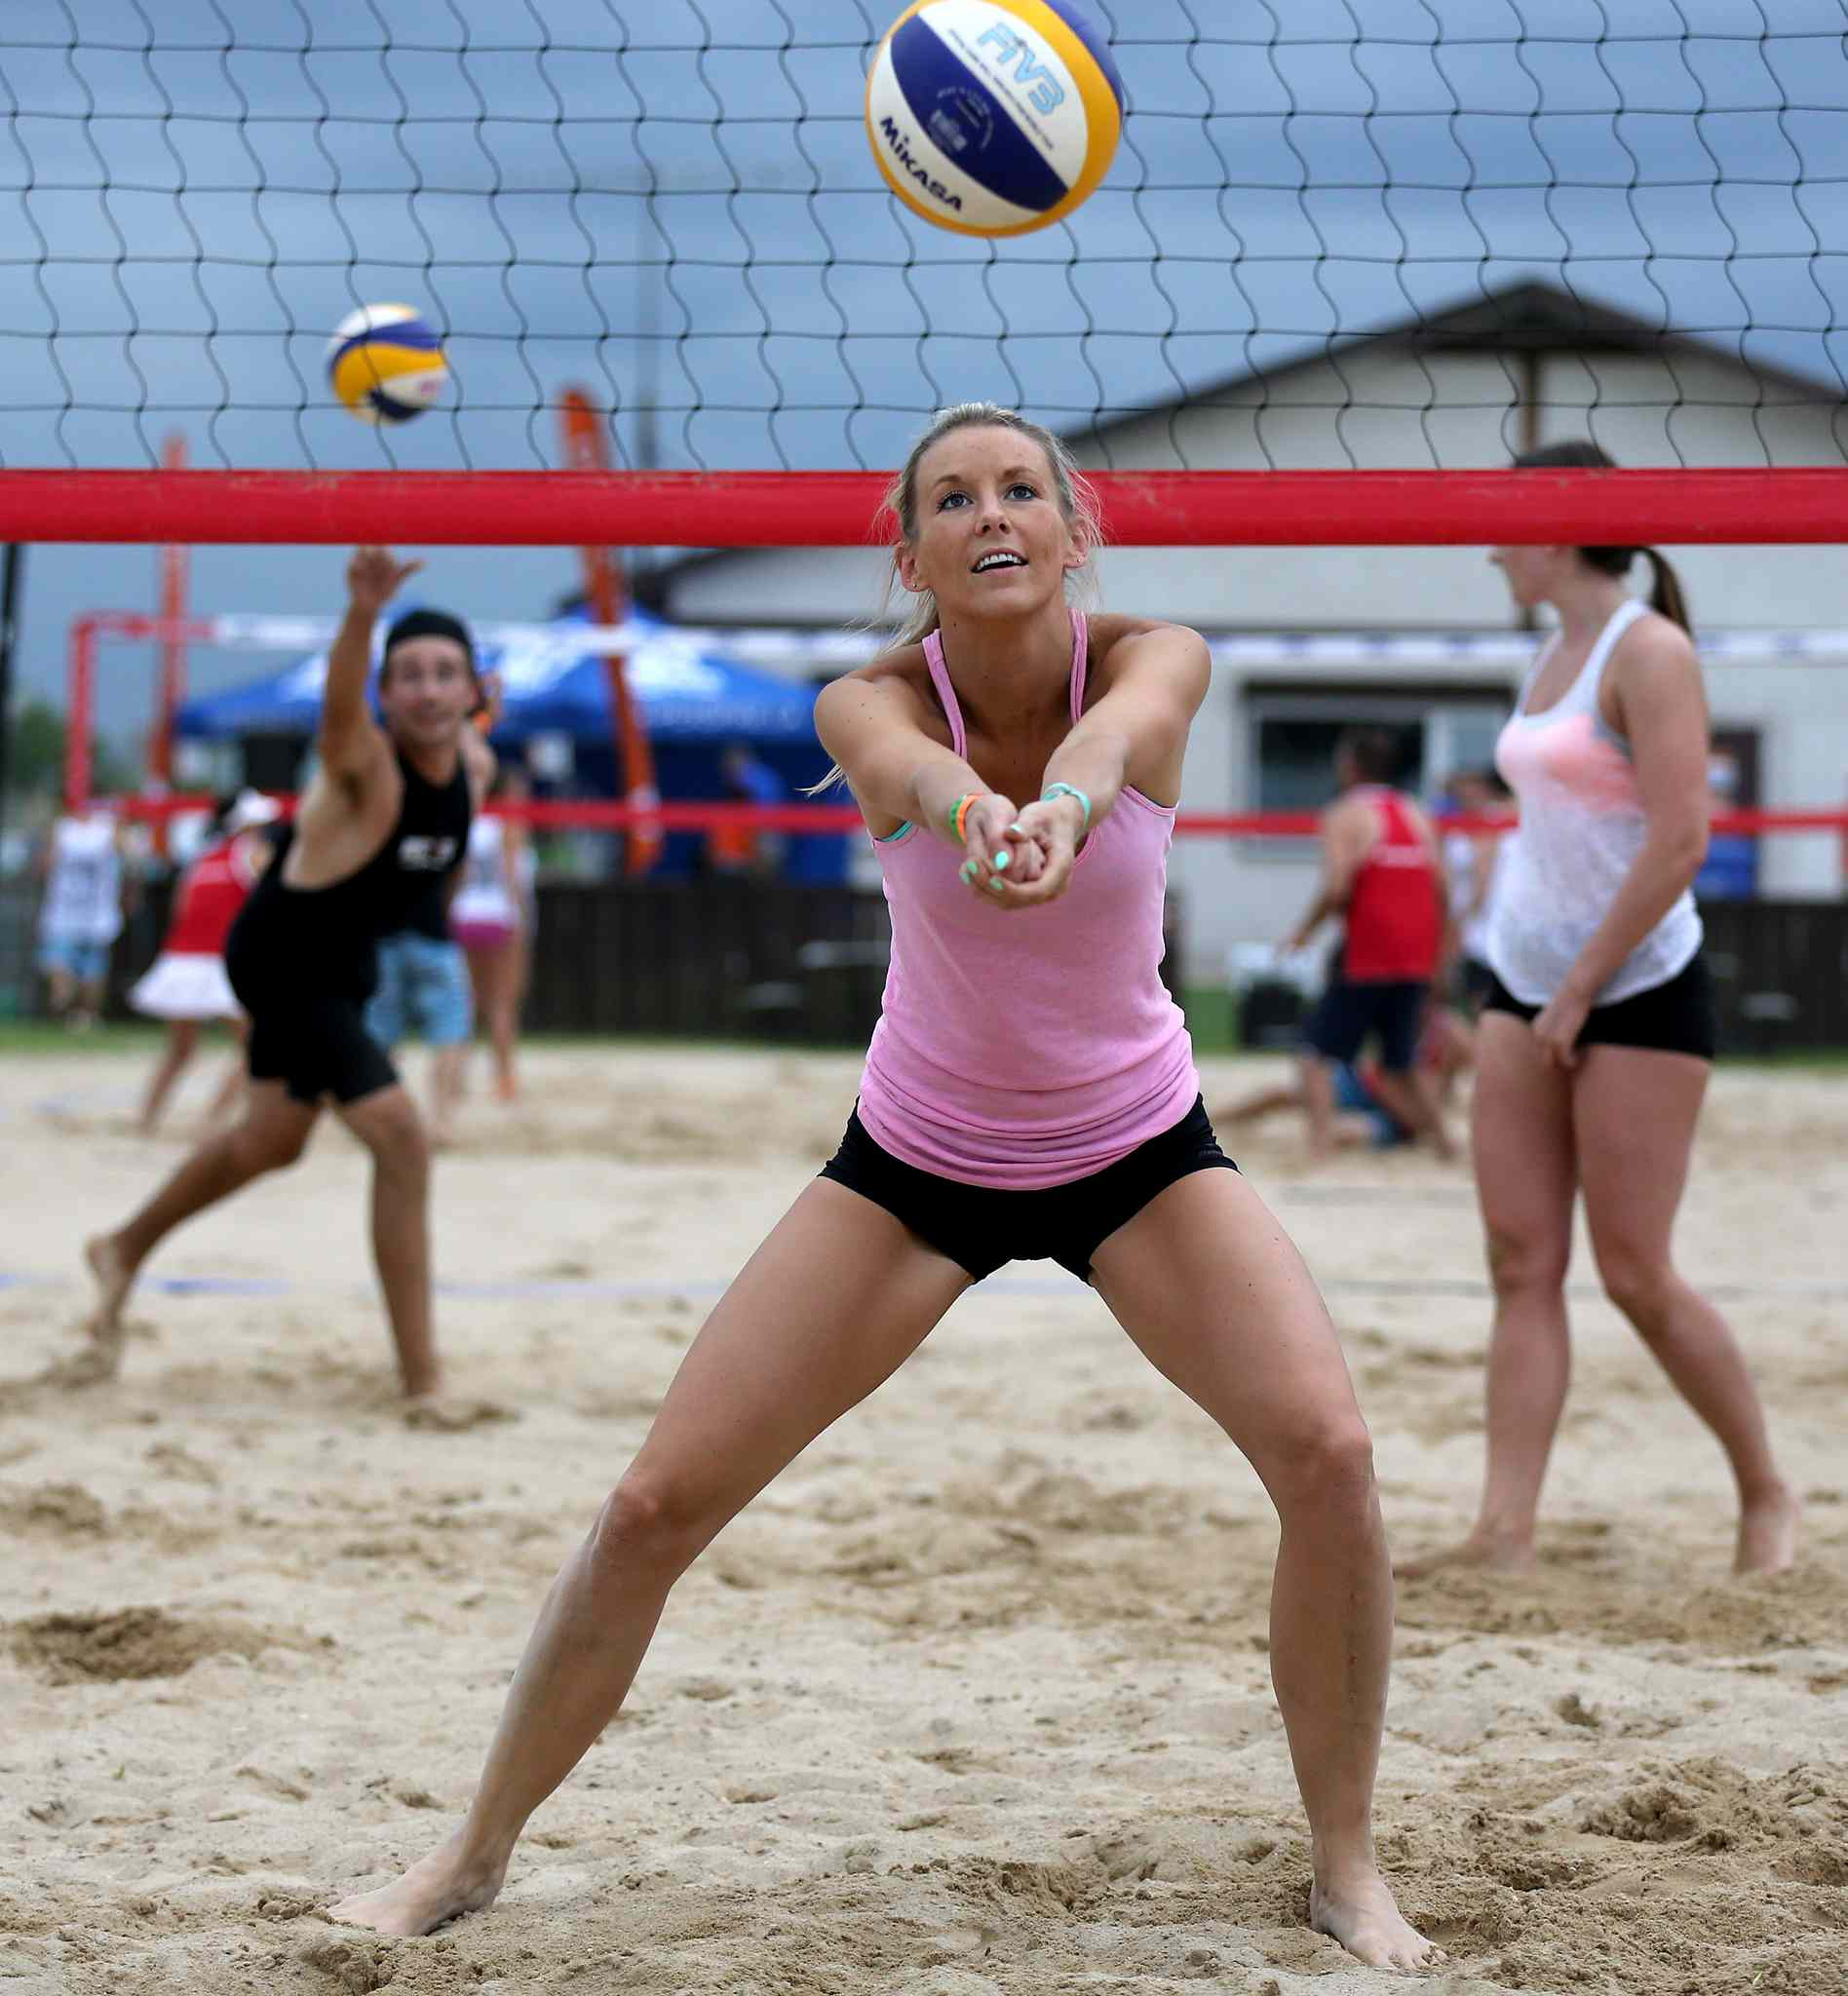 Brittany Balcewich of City Kitties warms up at the Super-Spike volleyball tournament at Maple Grove Rugby Park, Friday, July 18, 2014.